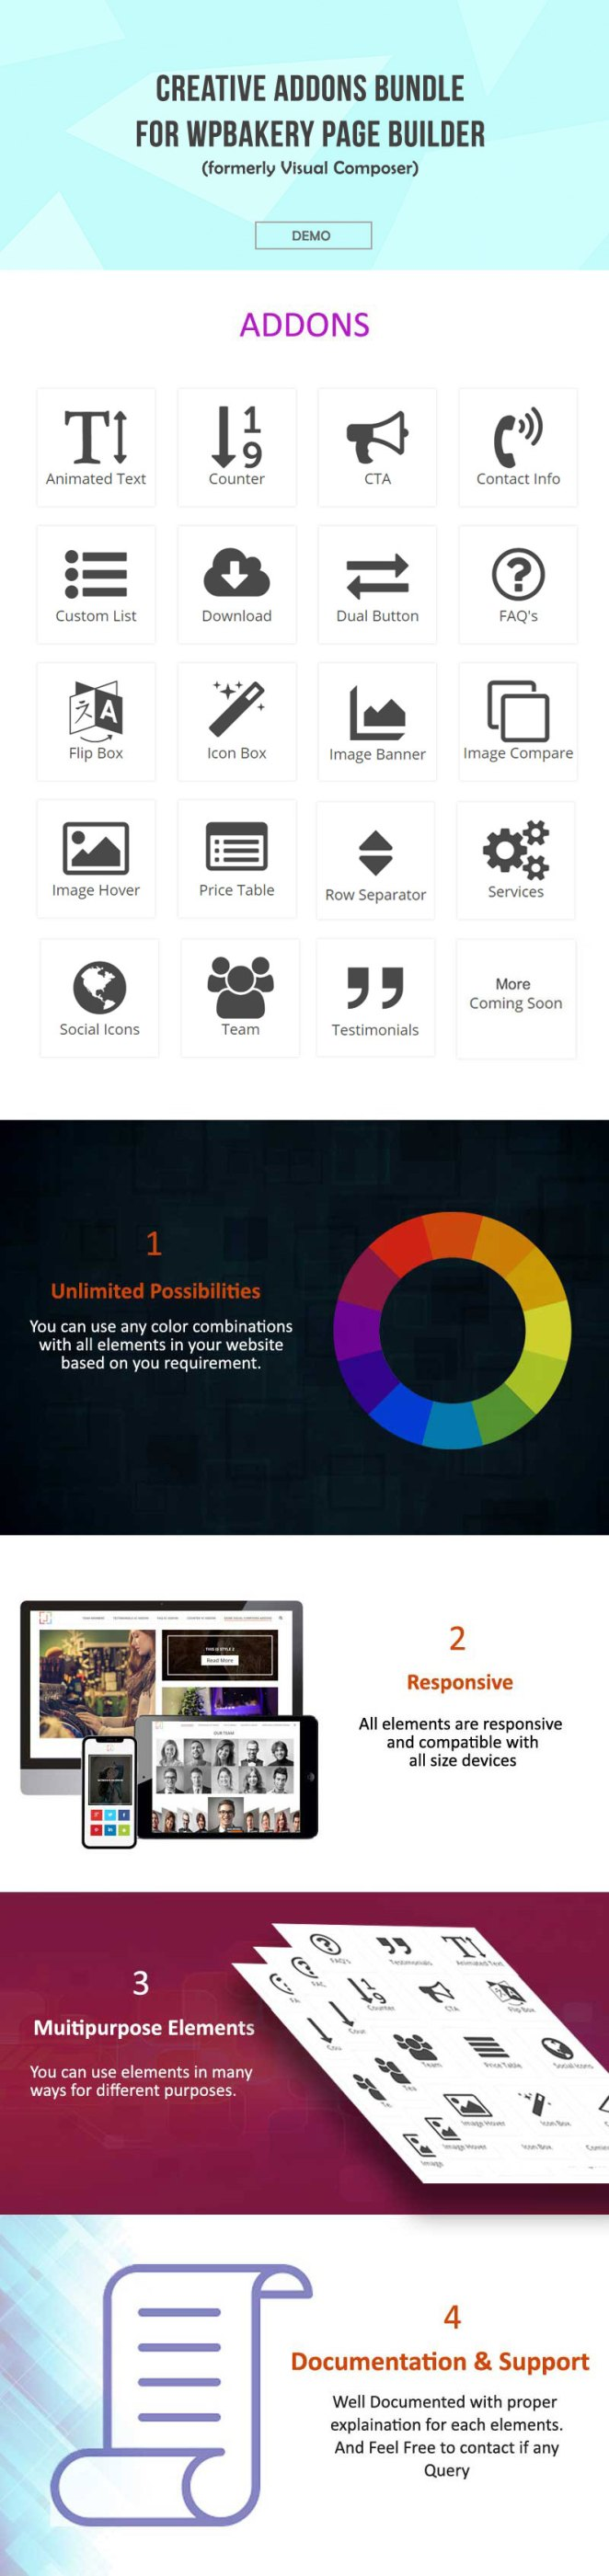 Creative Addons Bundle For WPBakery Page Builder - 1